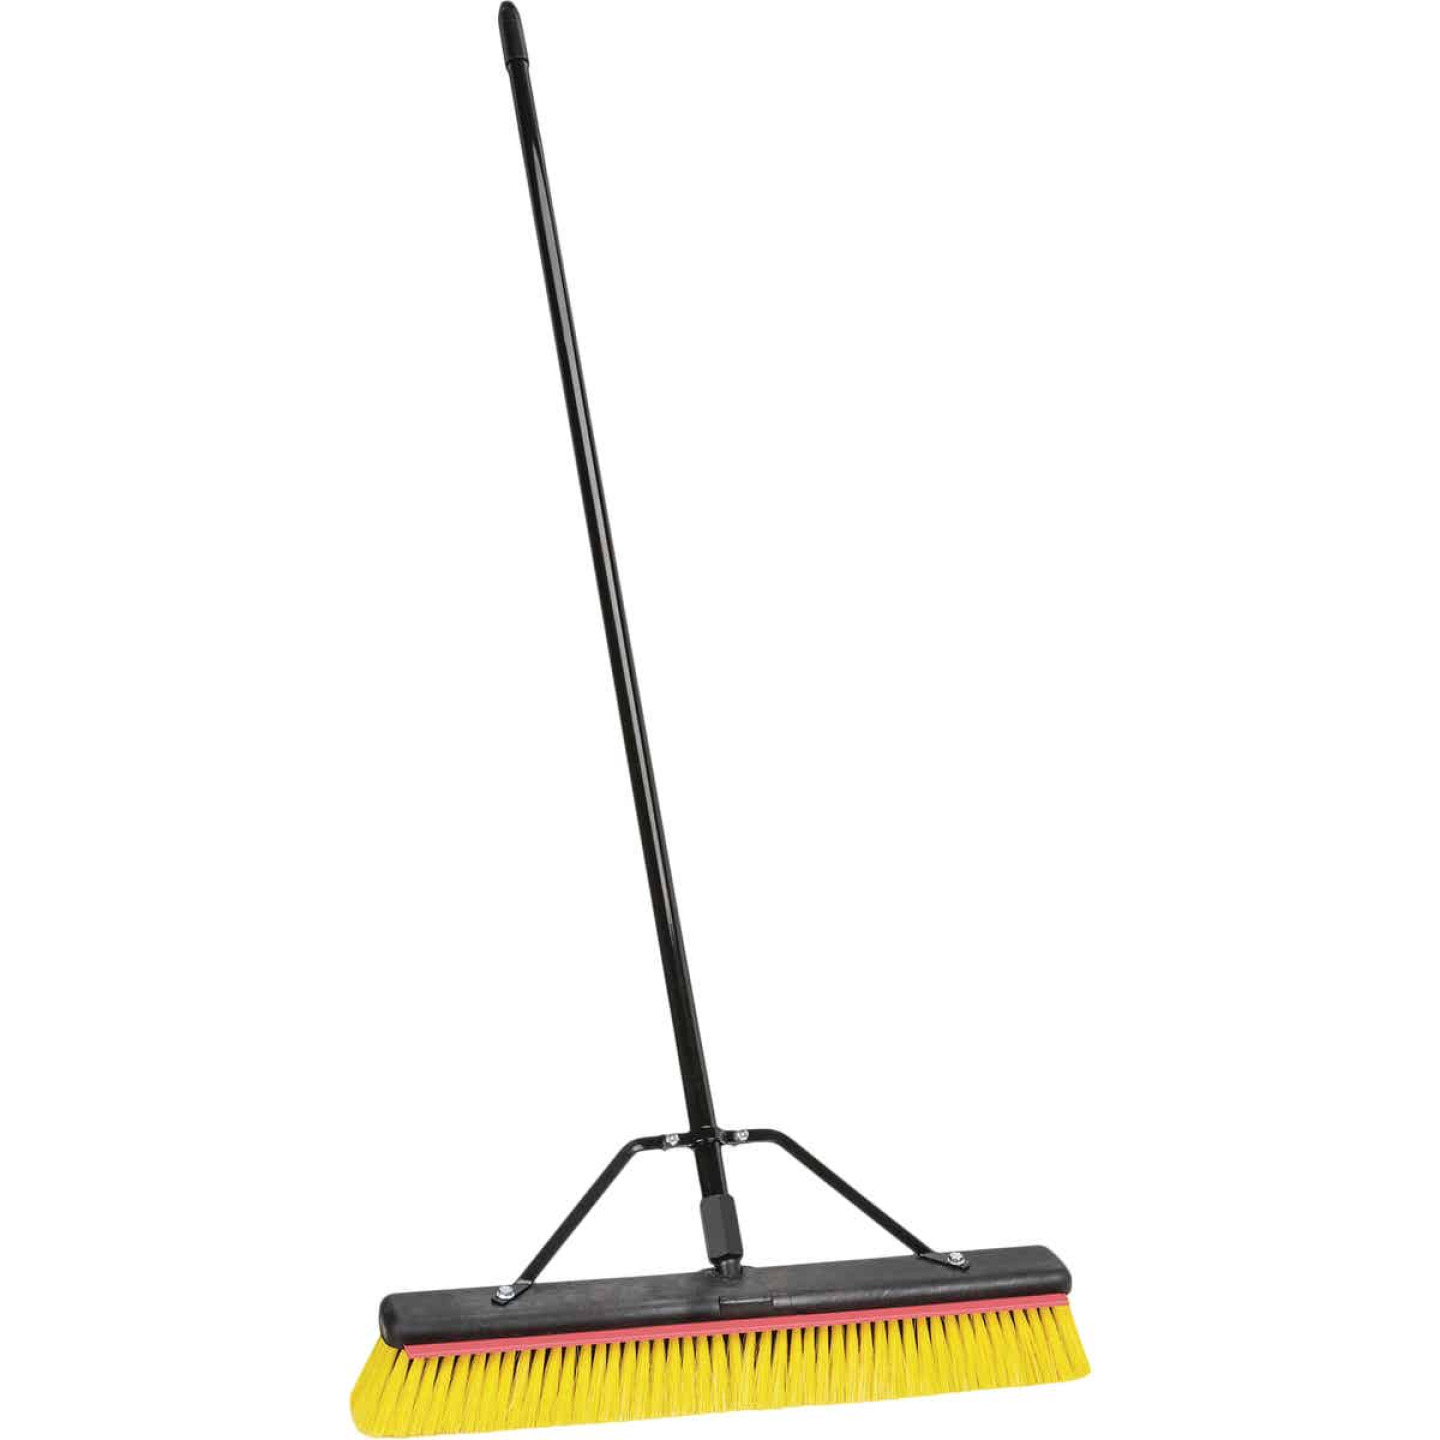 Harper 24 In. Multi-Surface Indoor/Outdoor Push Broom with Squeegee Image 1